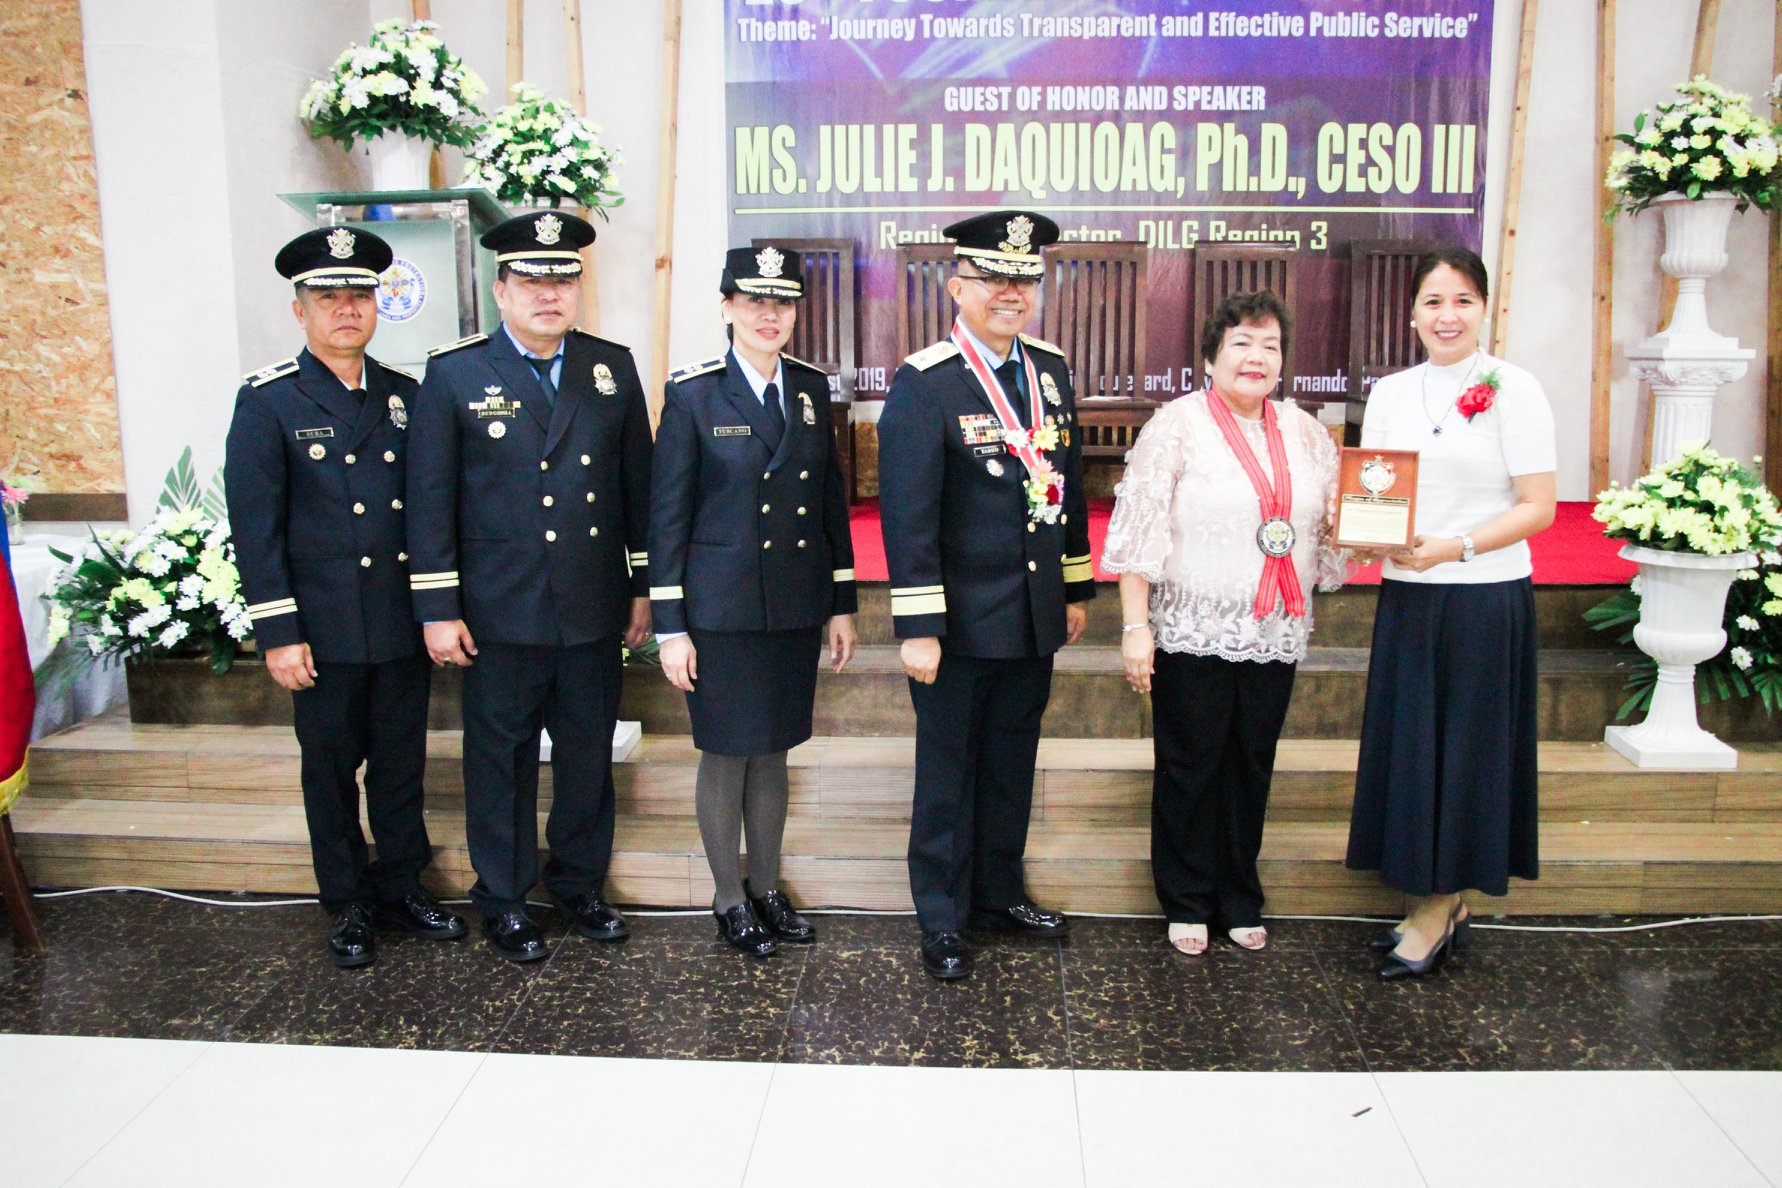 Plaque of Appreciation Awarded to Mayor Eleanor D. Dominguez